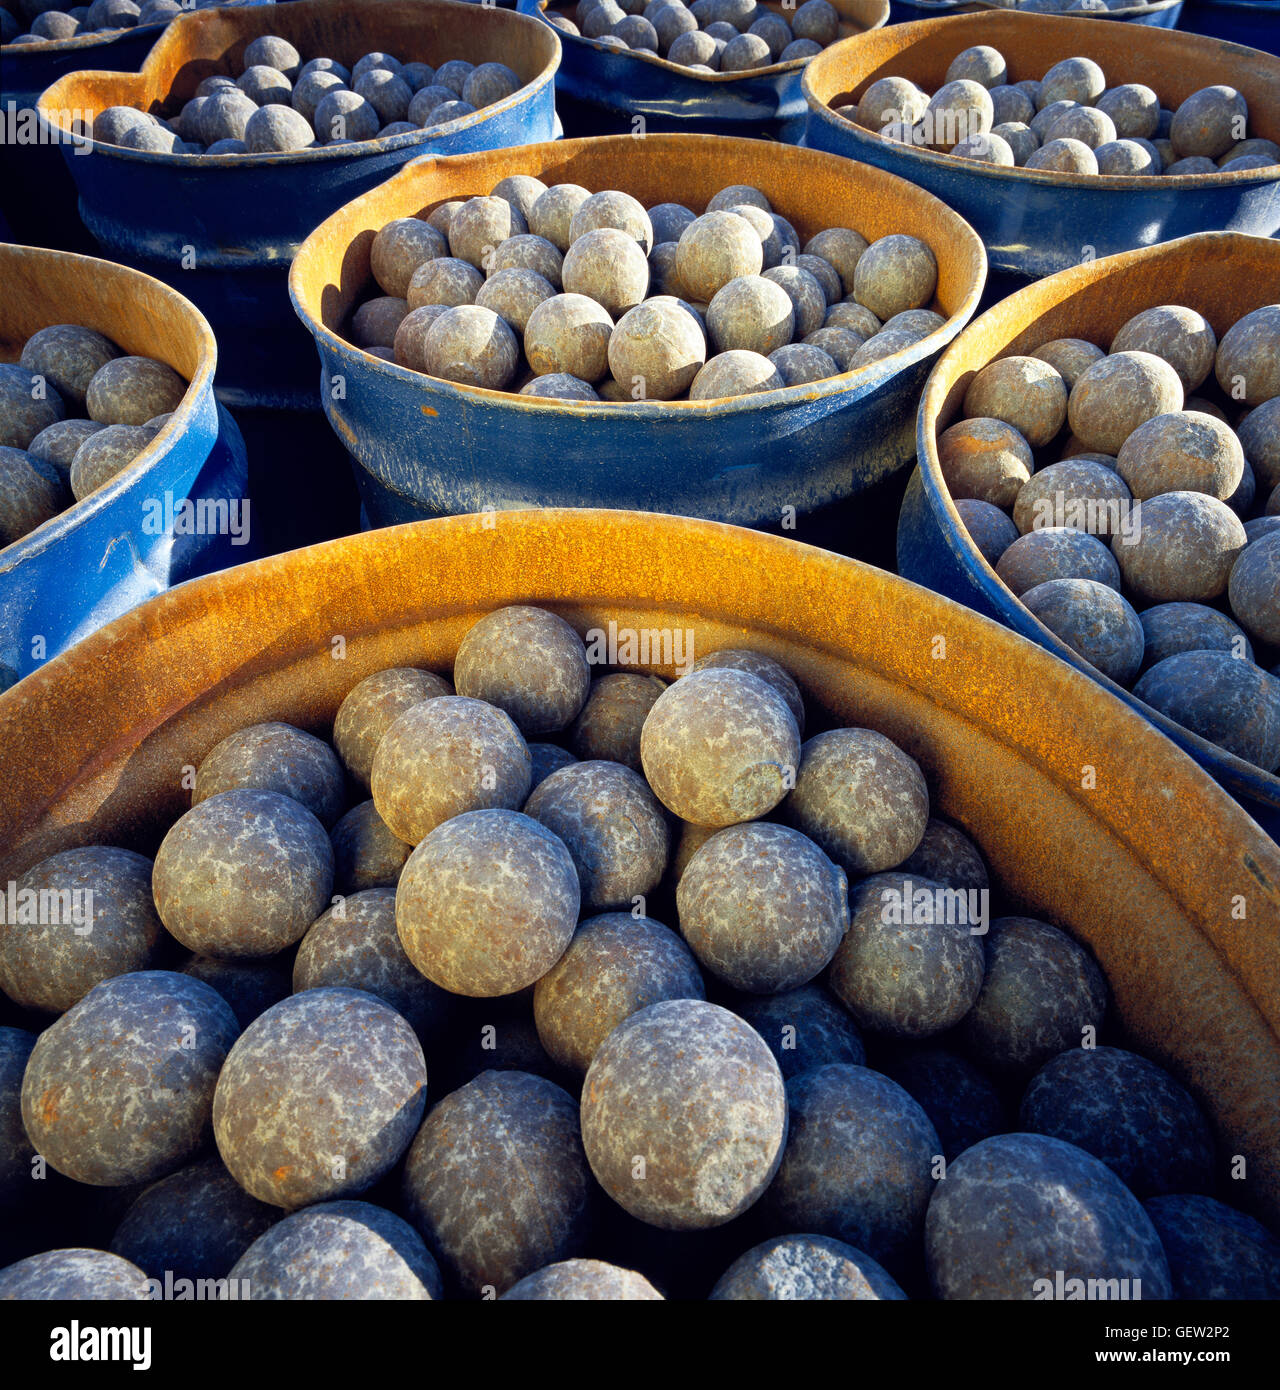 Roller balls used in cement plant machinery to grind down raw materials in the manufacturing of cement. - Stock Image